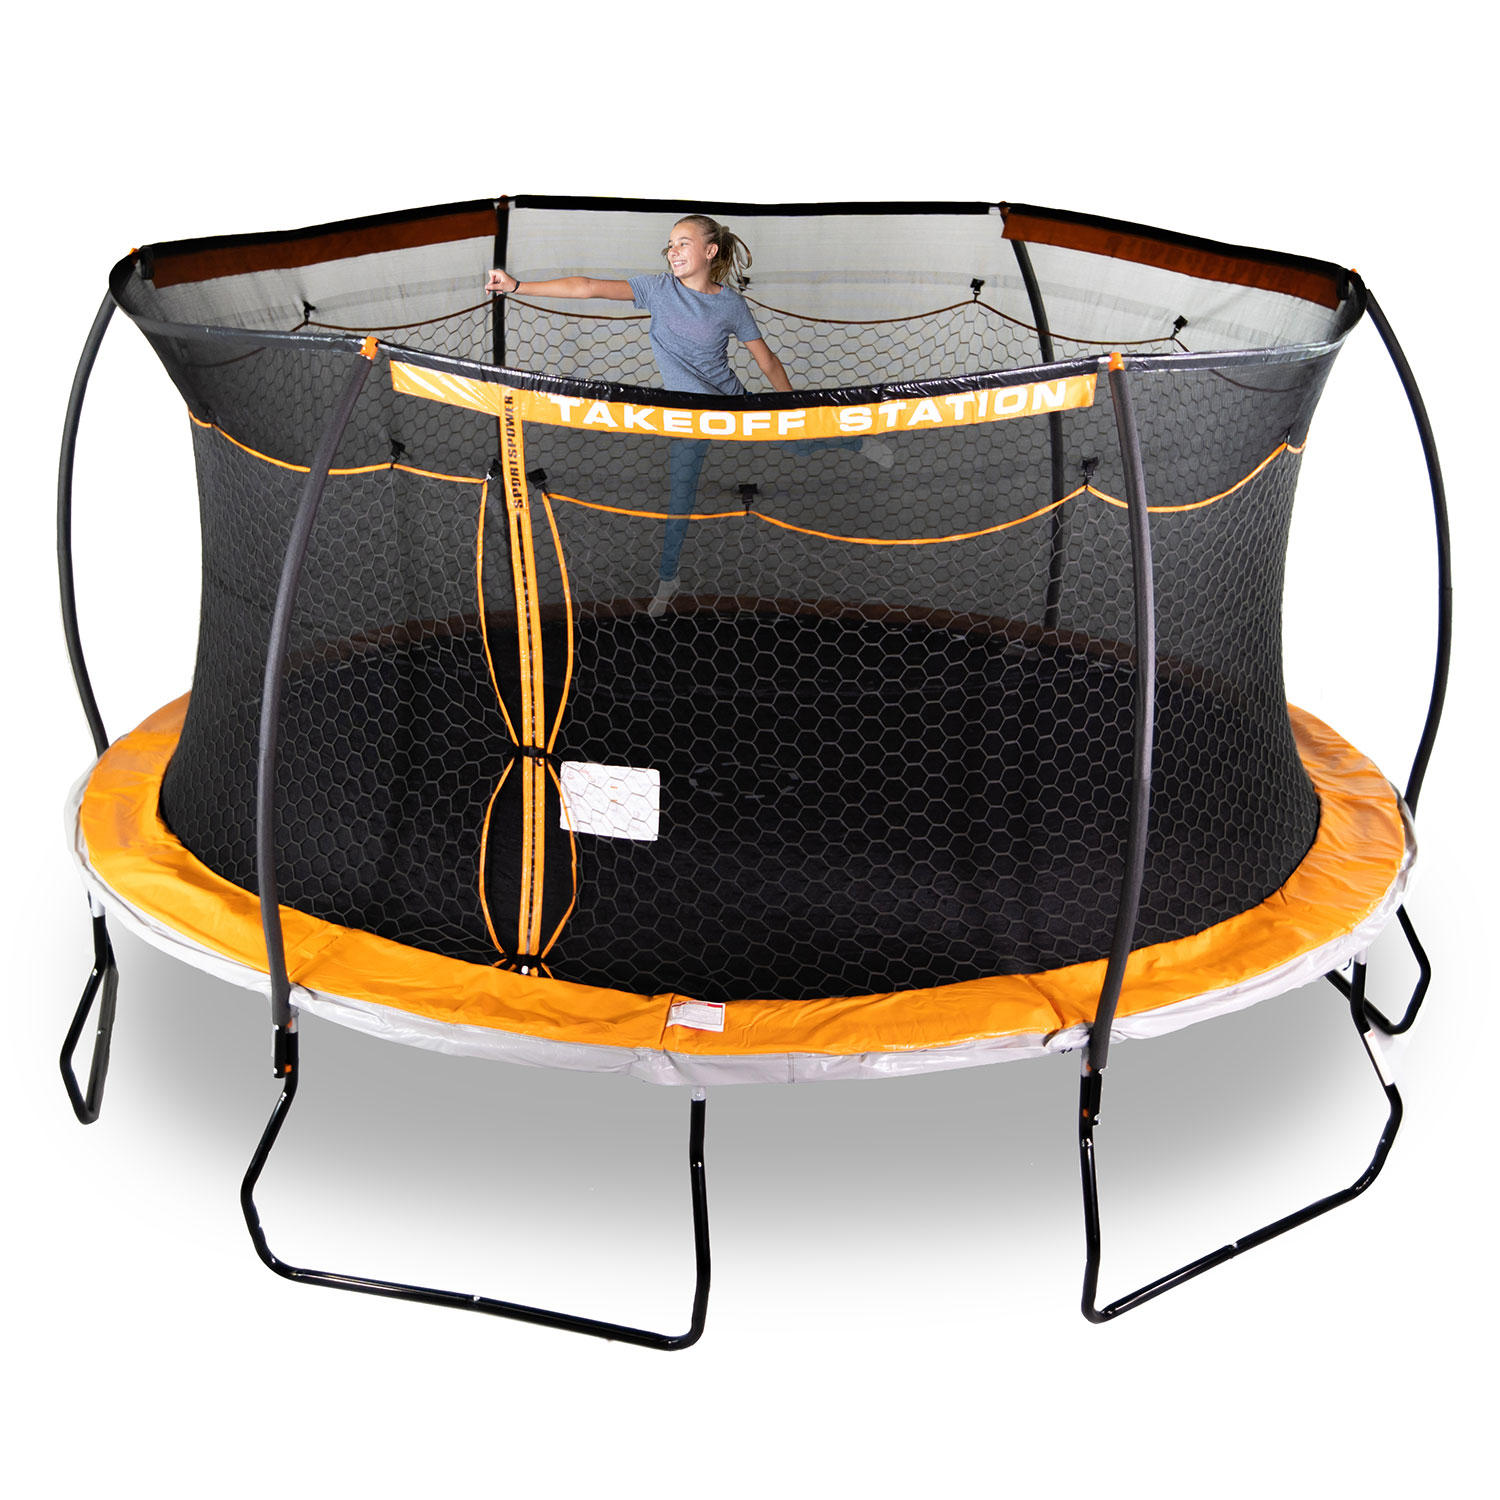 Sportspower 15' Steelflex Trampoline with Electron Shooter